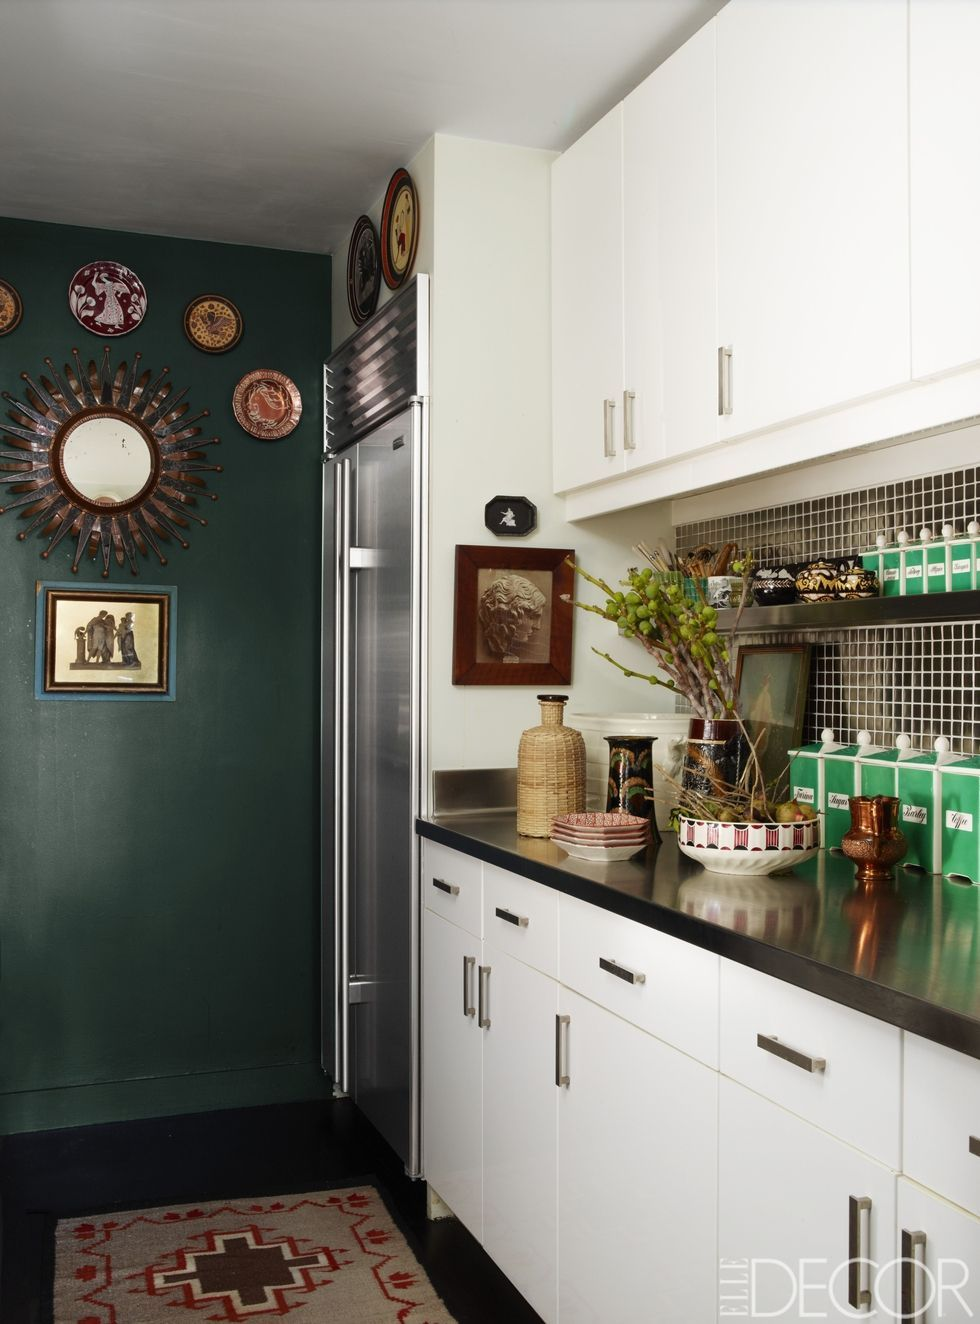 50+ Small Kitchen Design Ideas - Decorating Tiny Kitchens